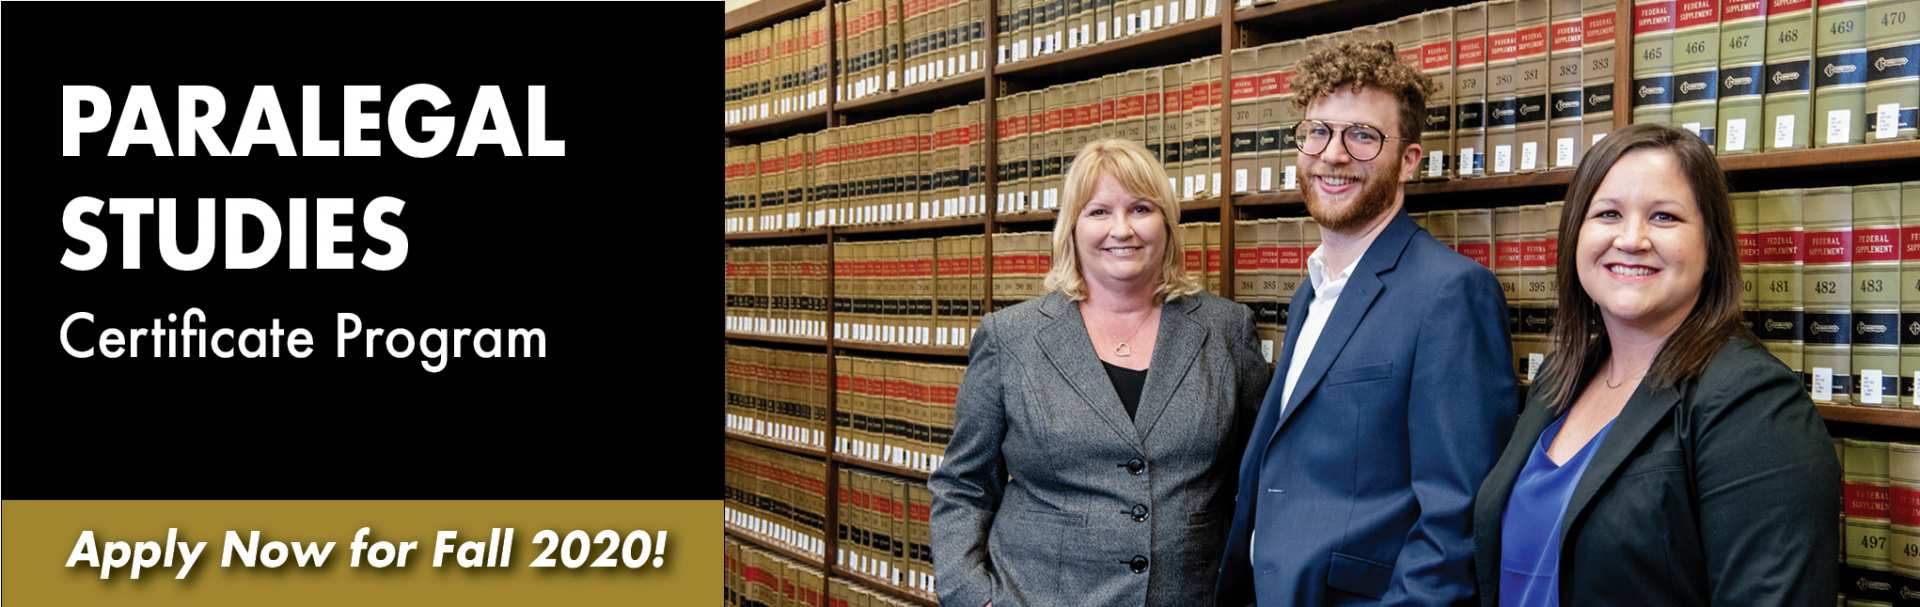 Two women and one man professionally dressed standing in front of books stacks at Los Angeles Law Library.